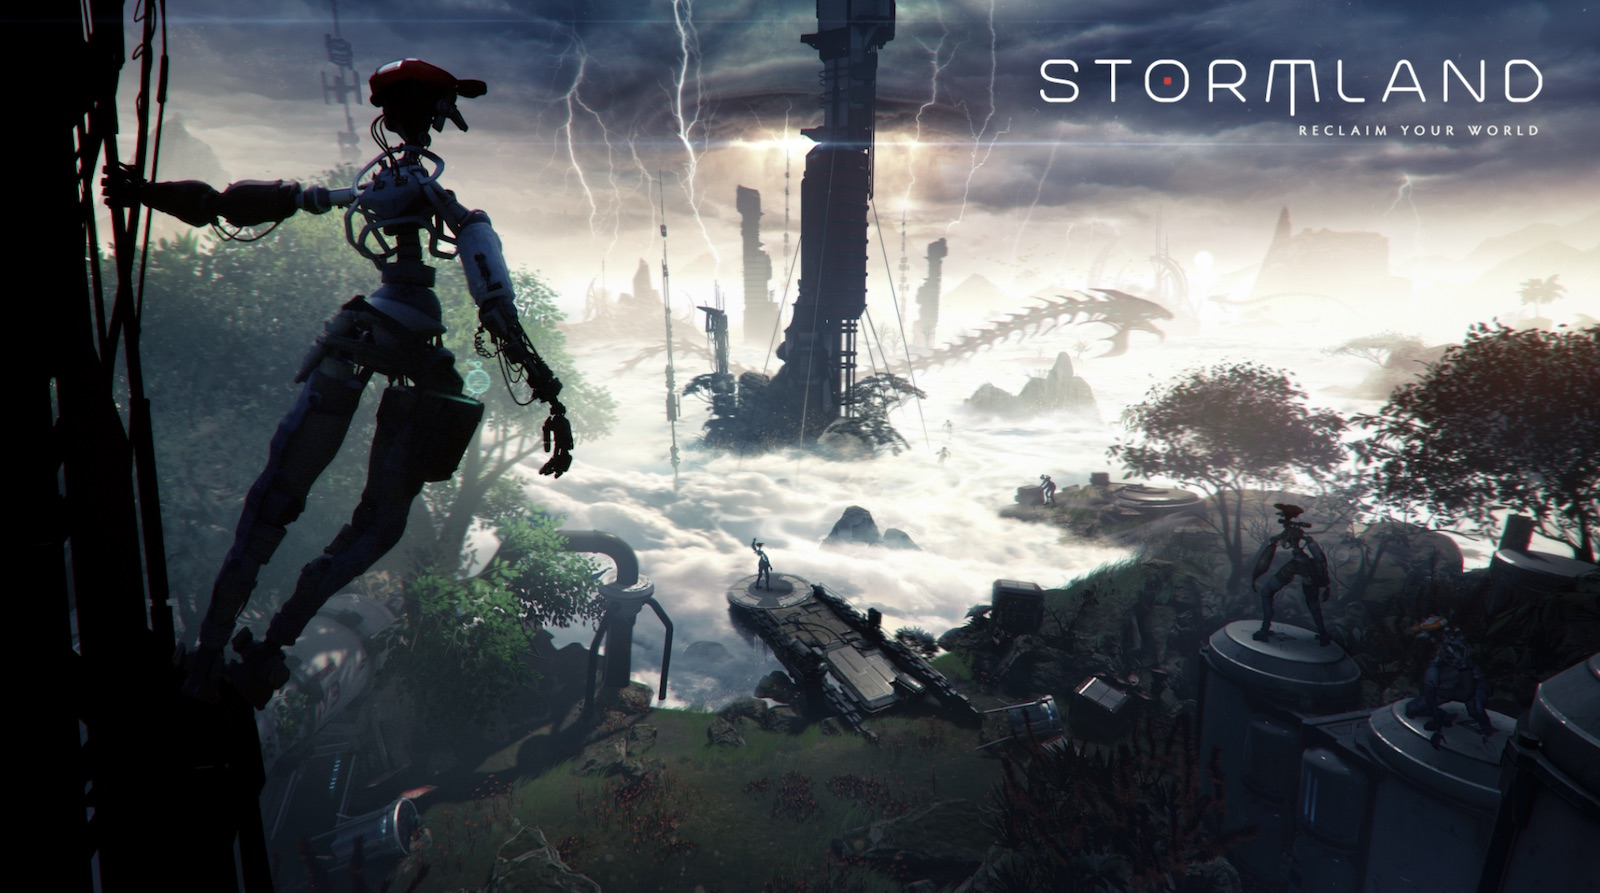 Oculus Showcases First Gameplay Footage Of Stormland